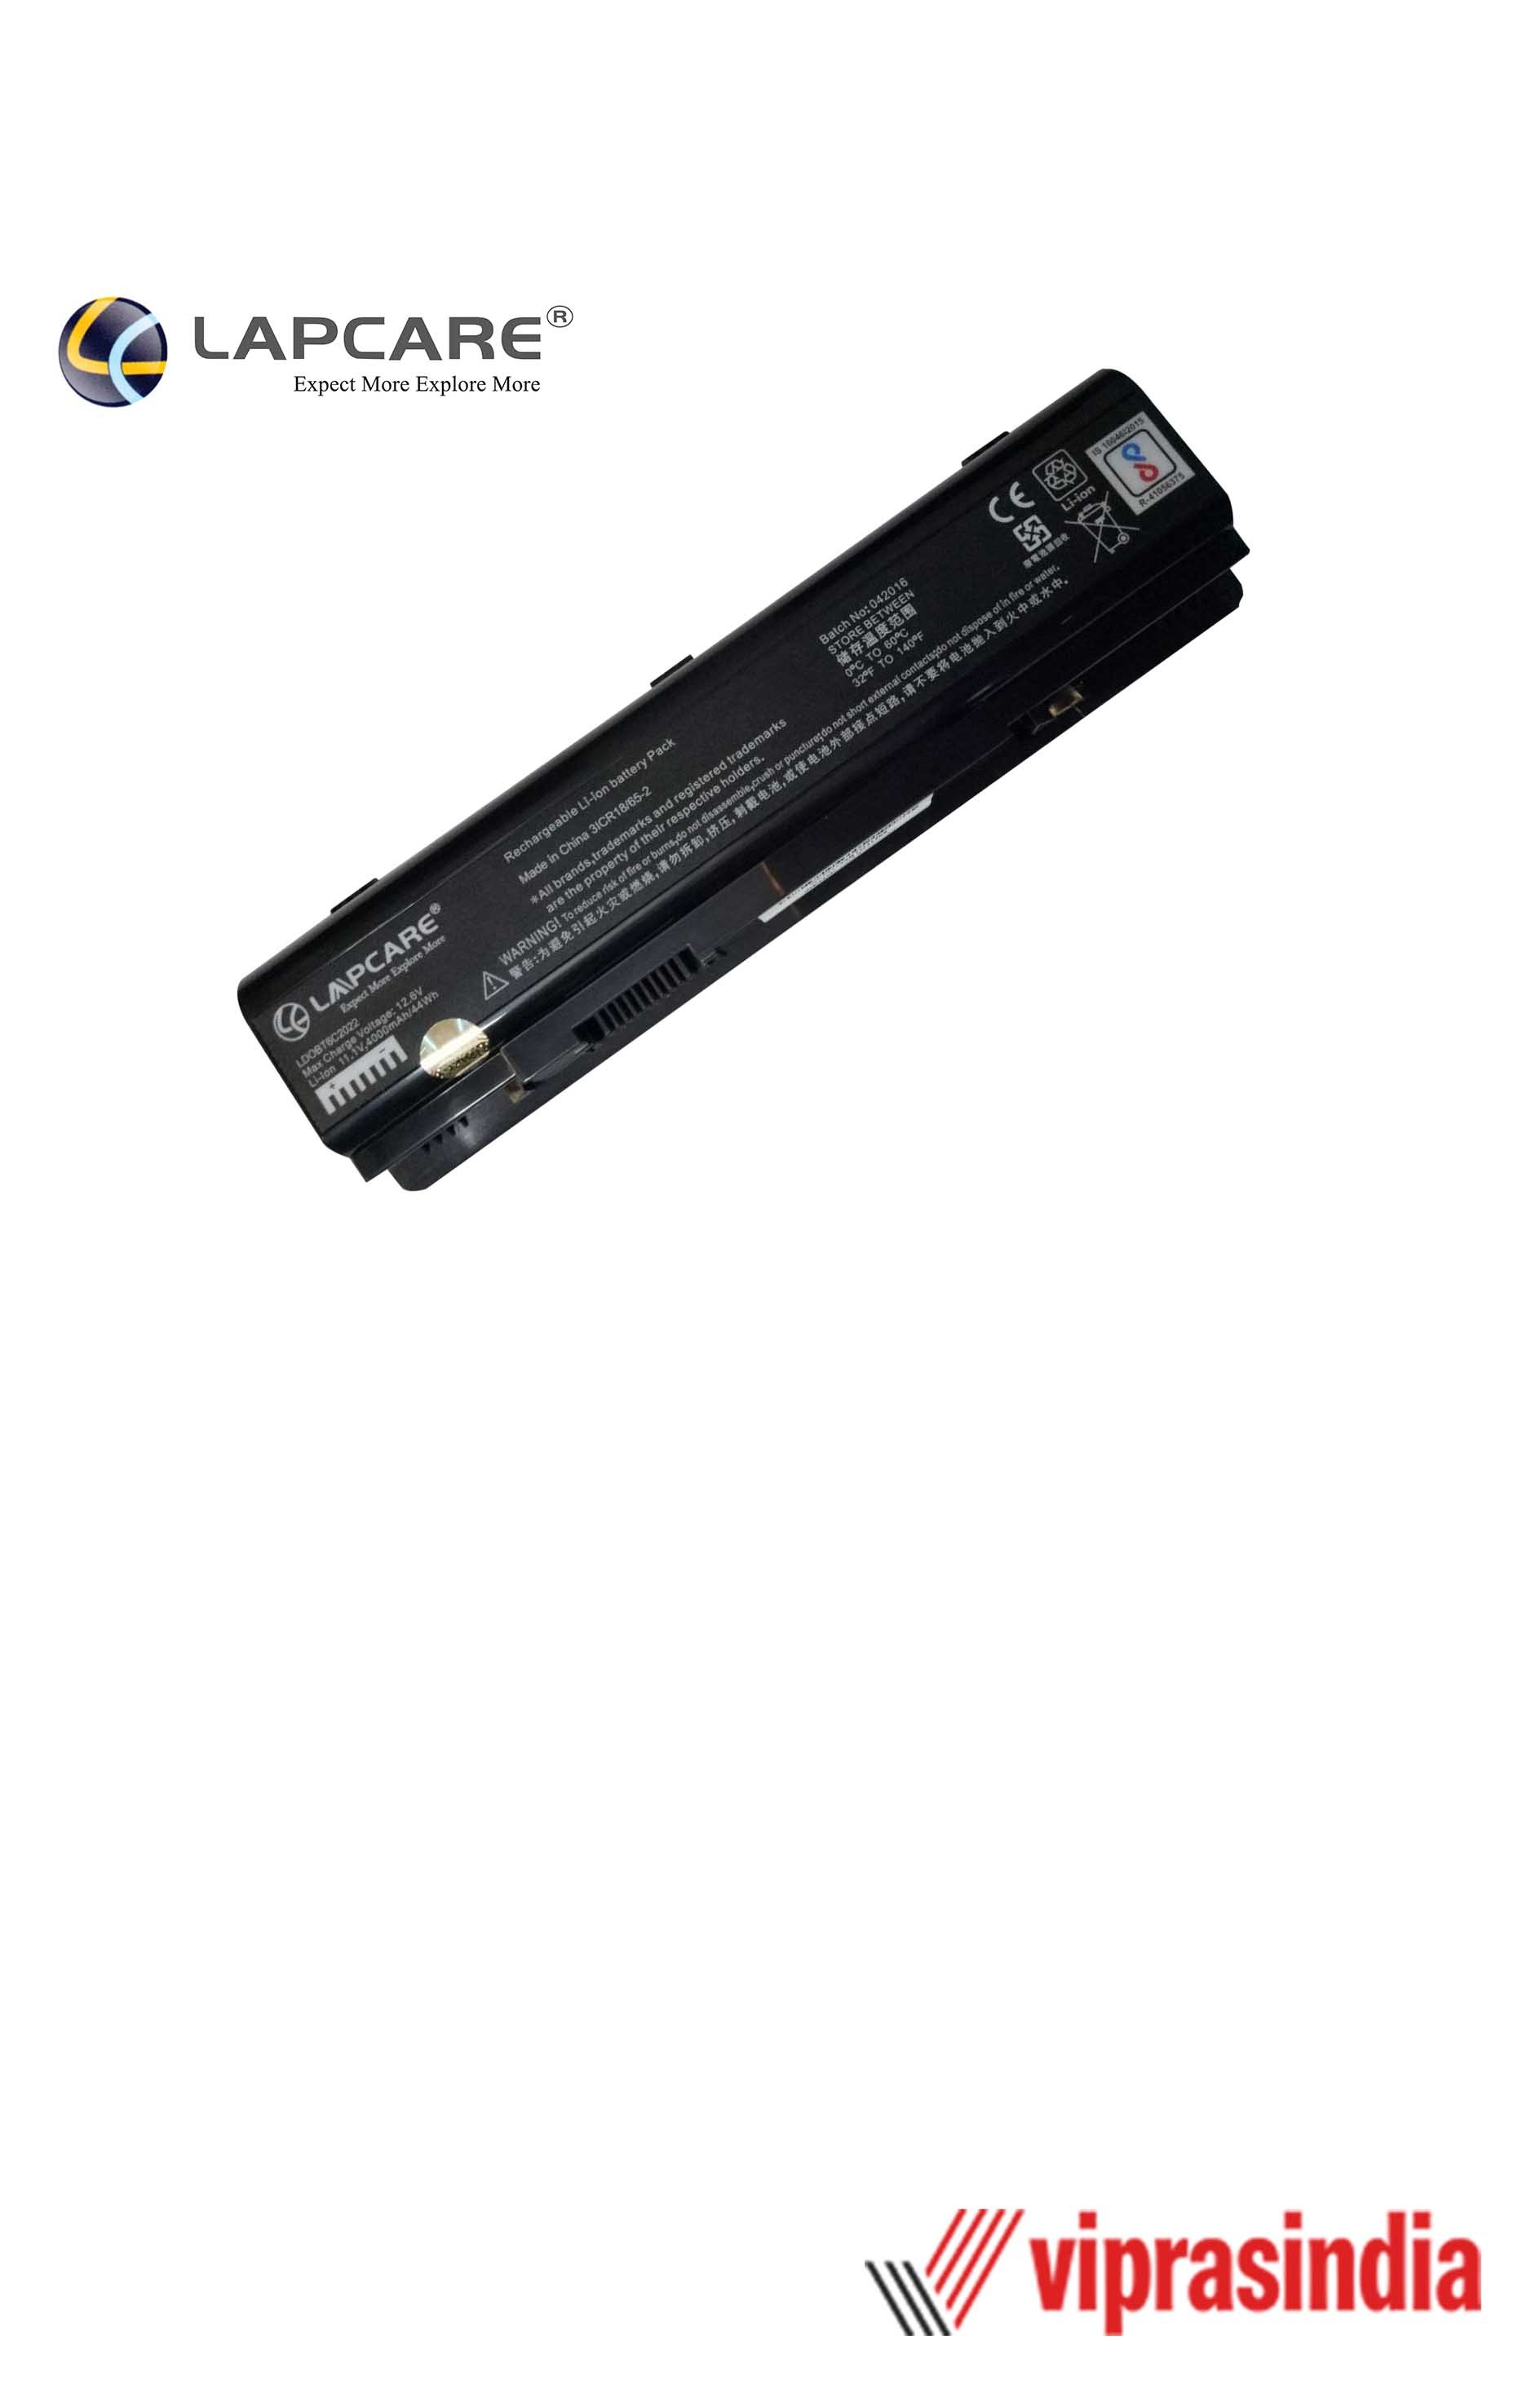 Laptop Battery Lapcare Compatible For DELL A840